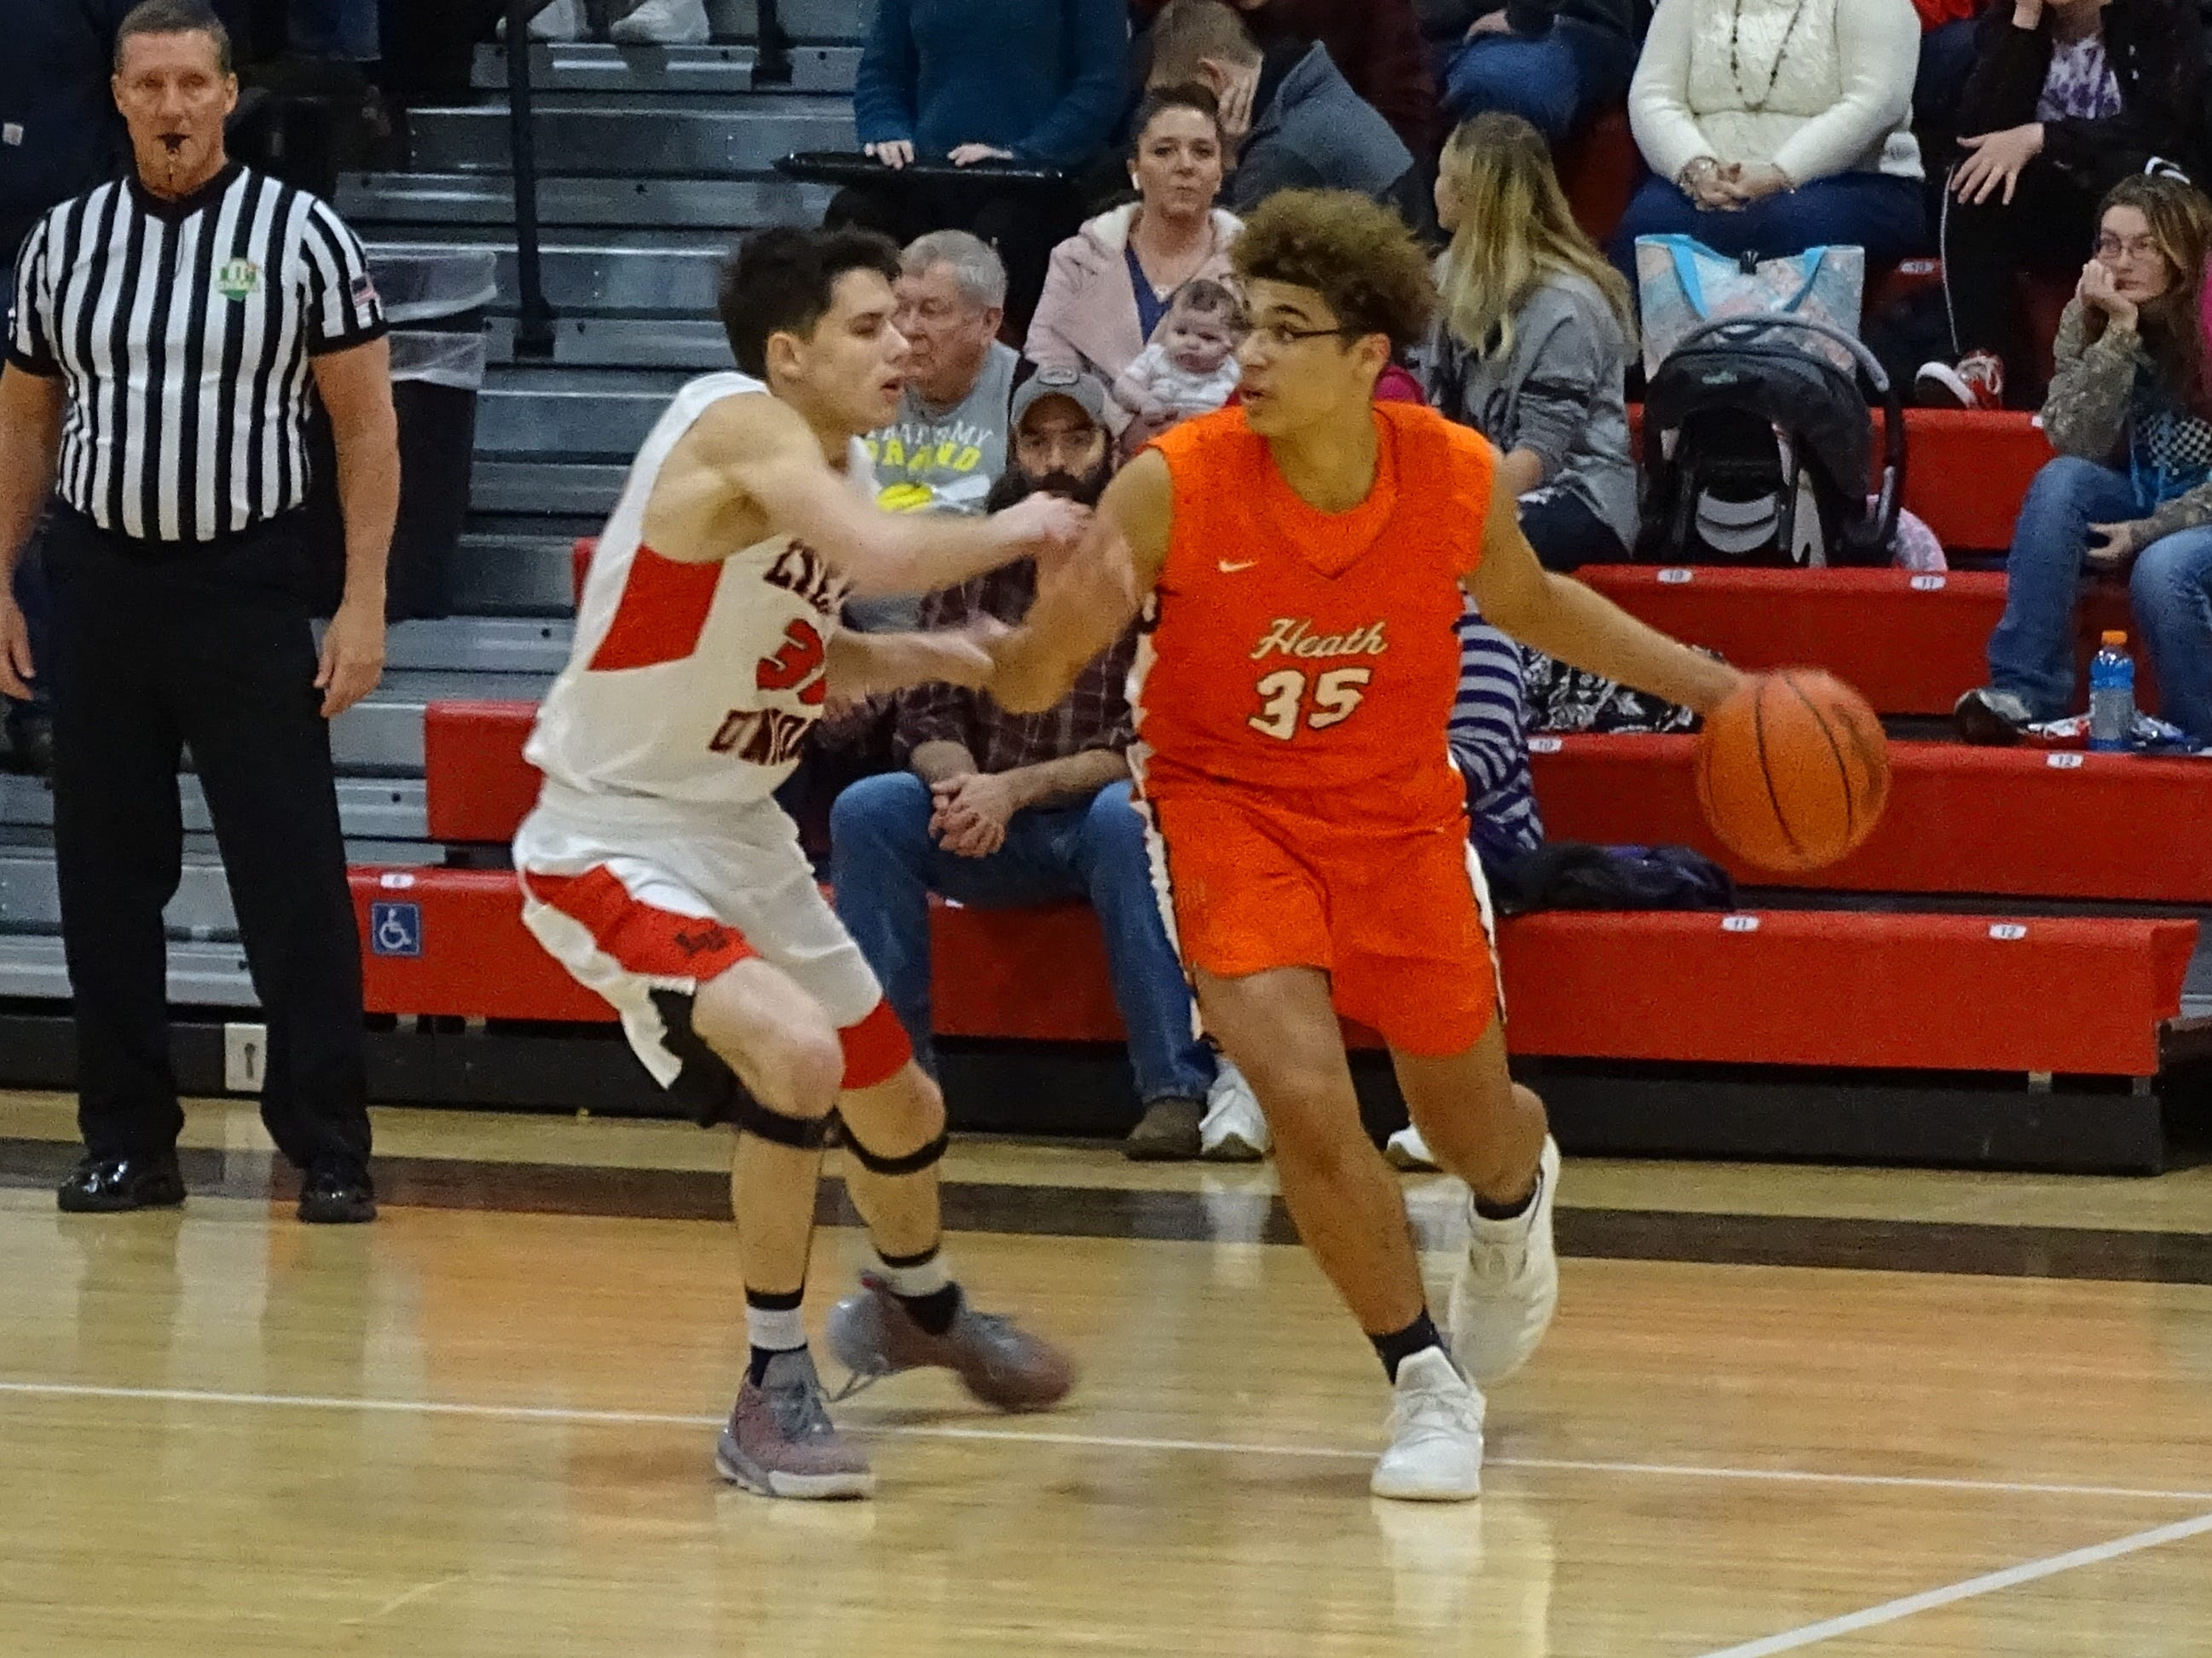 Heath's Keylan Williams dribbles past Liberty Union's Hunter Antritt during a nonconference game on Wednesday. The Lions pulled away in the second half for a 61-40 victory.